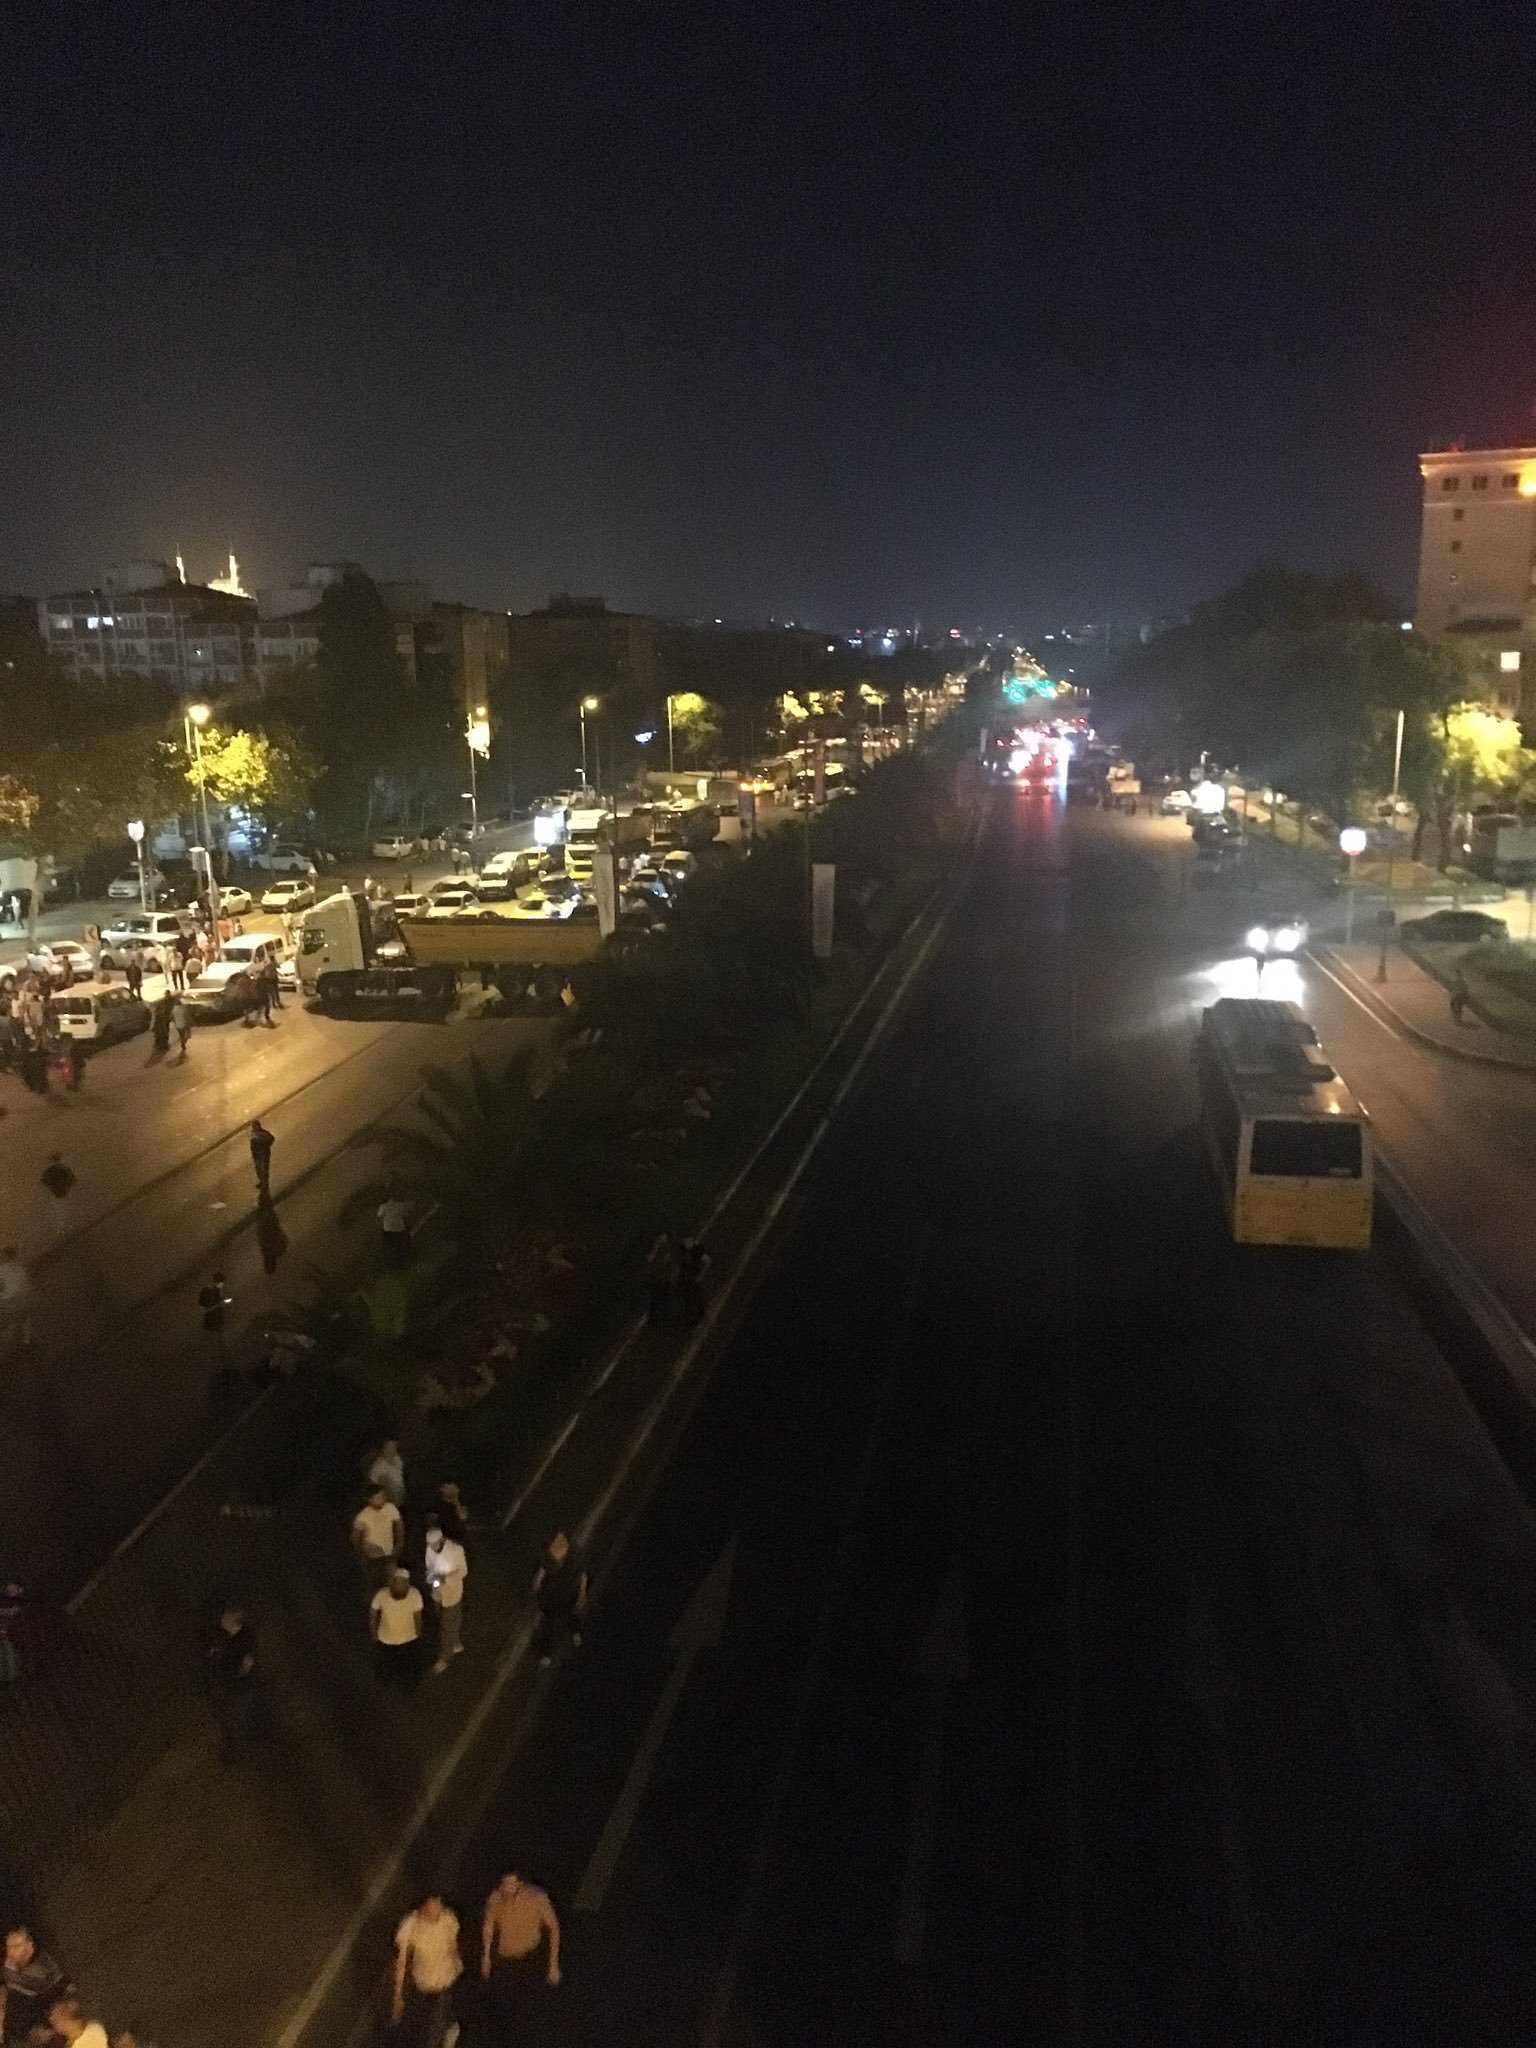 1Two tanks and five armored personnel carriers from the 66th Armored Mechanized Infantry Brigade Commend arrived at Vatan Avenue where Istanbul Police Headquarters is located.